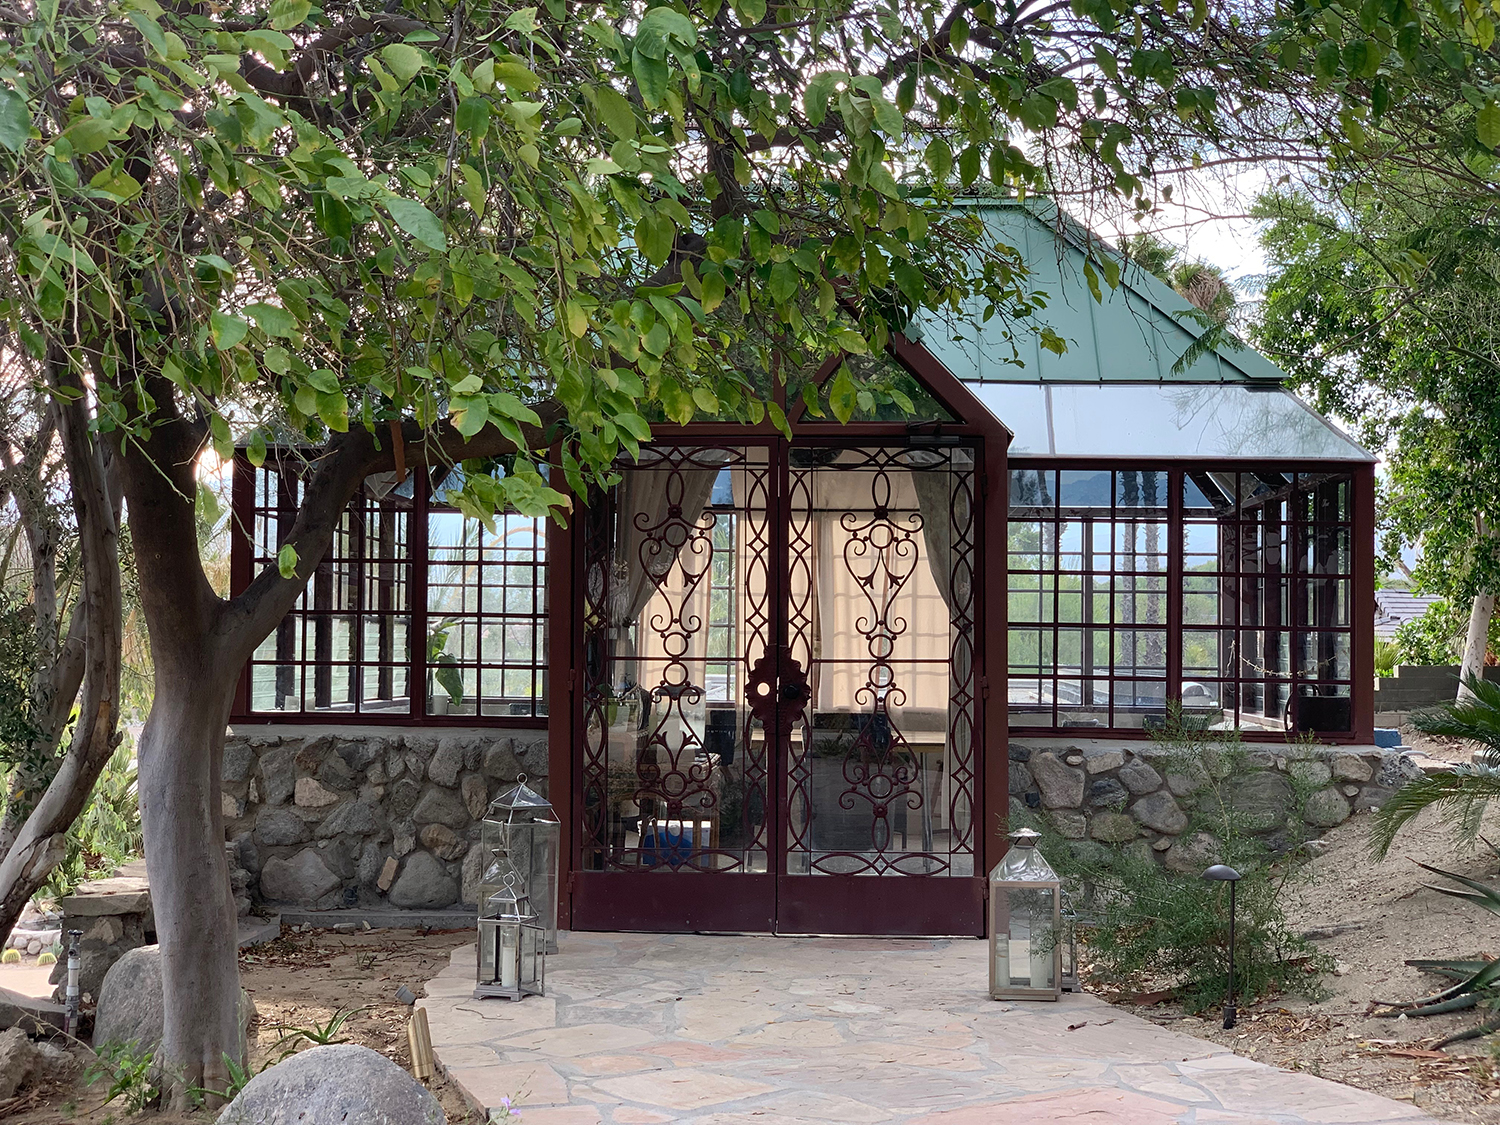 Free daily art classes are offered at the Glass House.